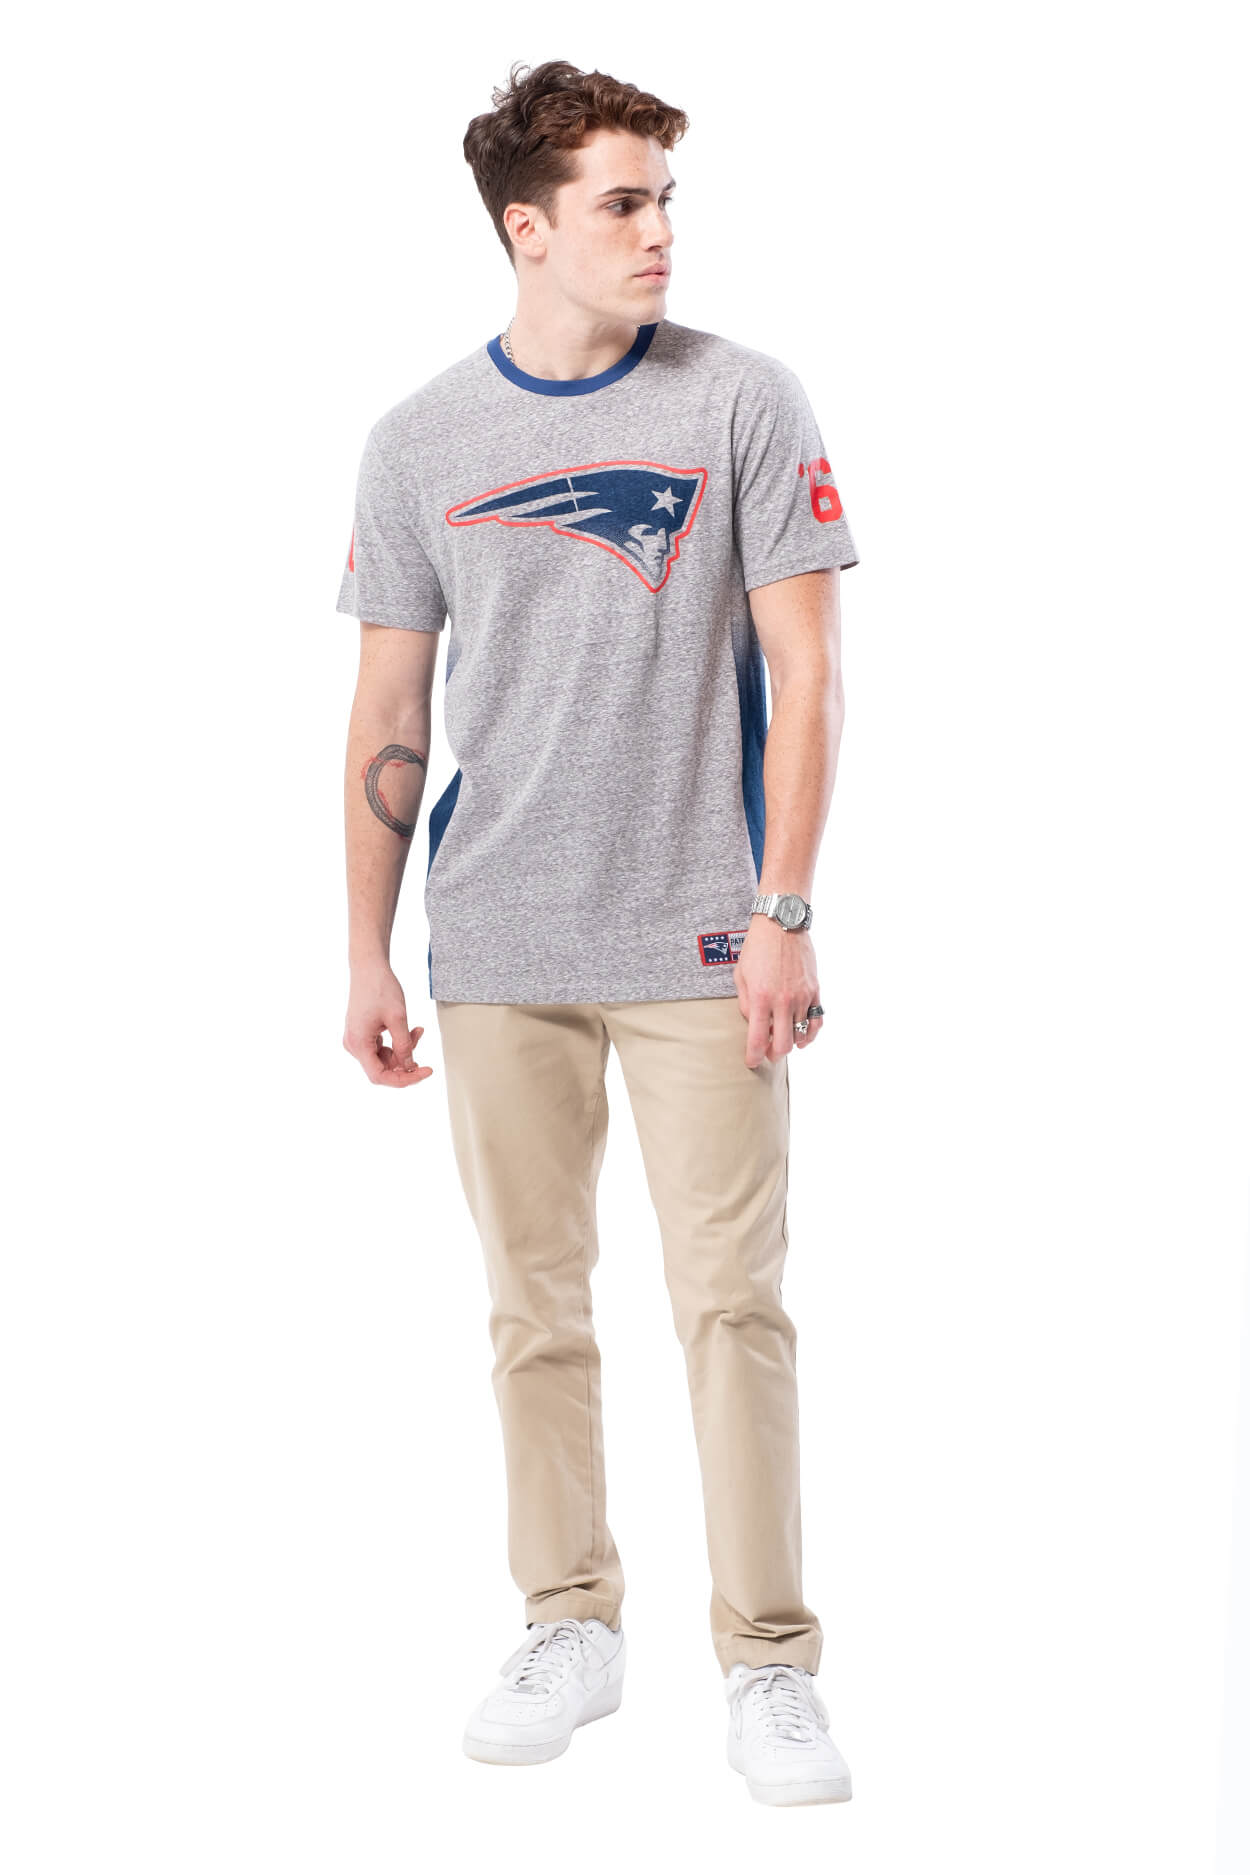 NFL New England Patriots Men's Vintage Ringer Short Sleeve Tee|New England Patriots